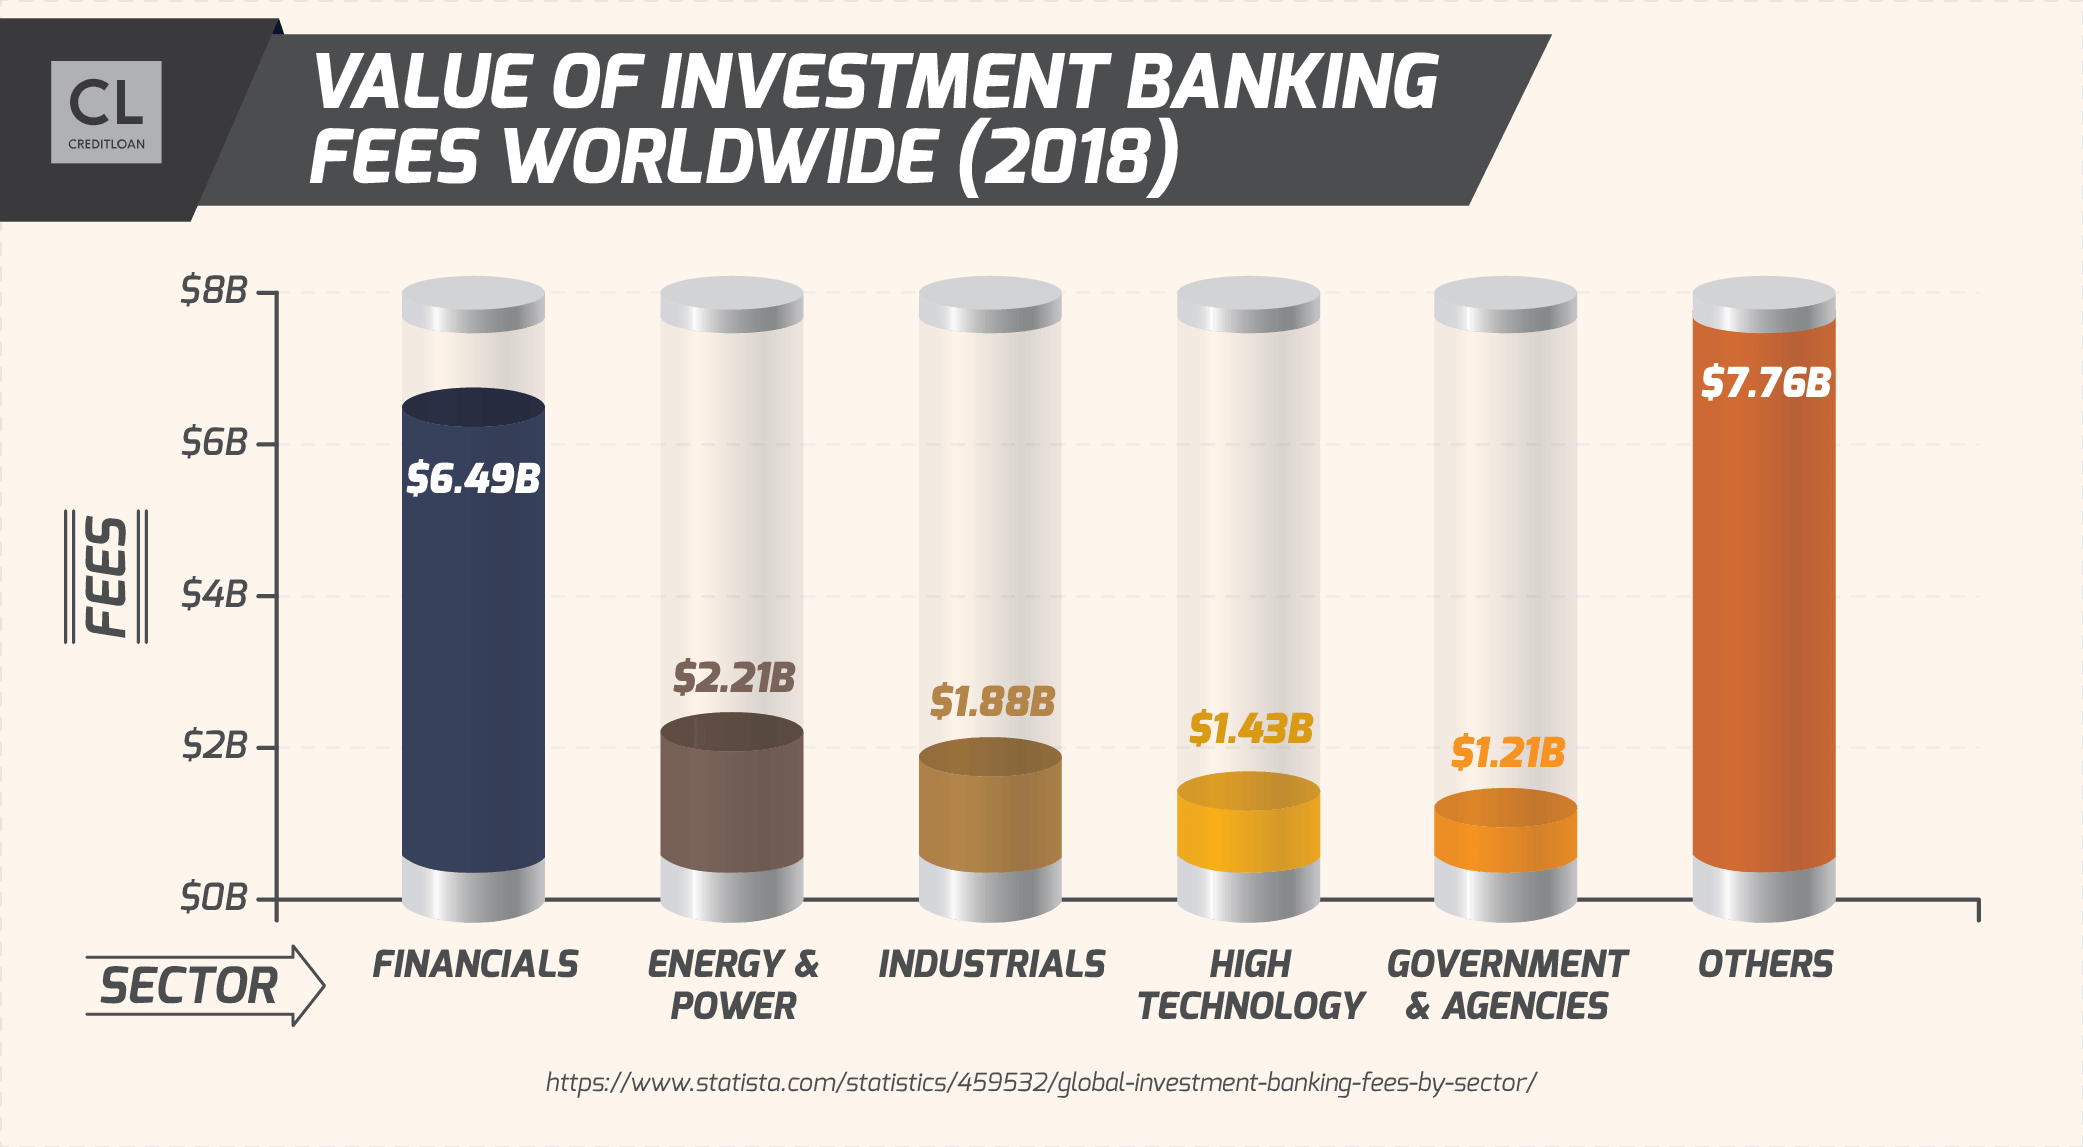 Value of Investment Banking Fees Worldwide